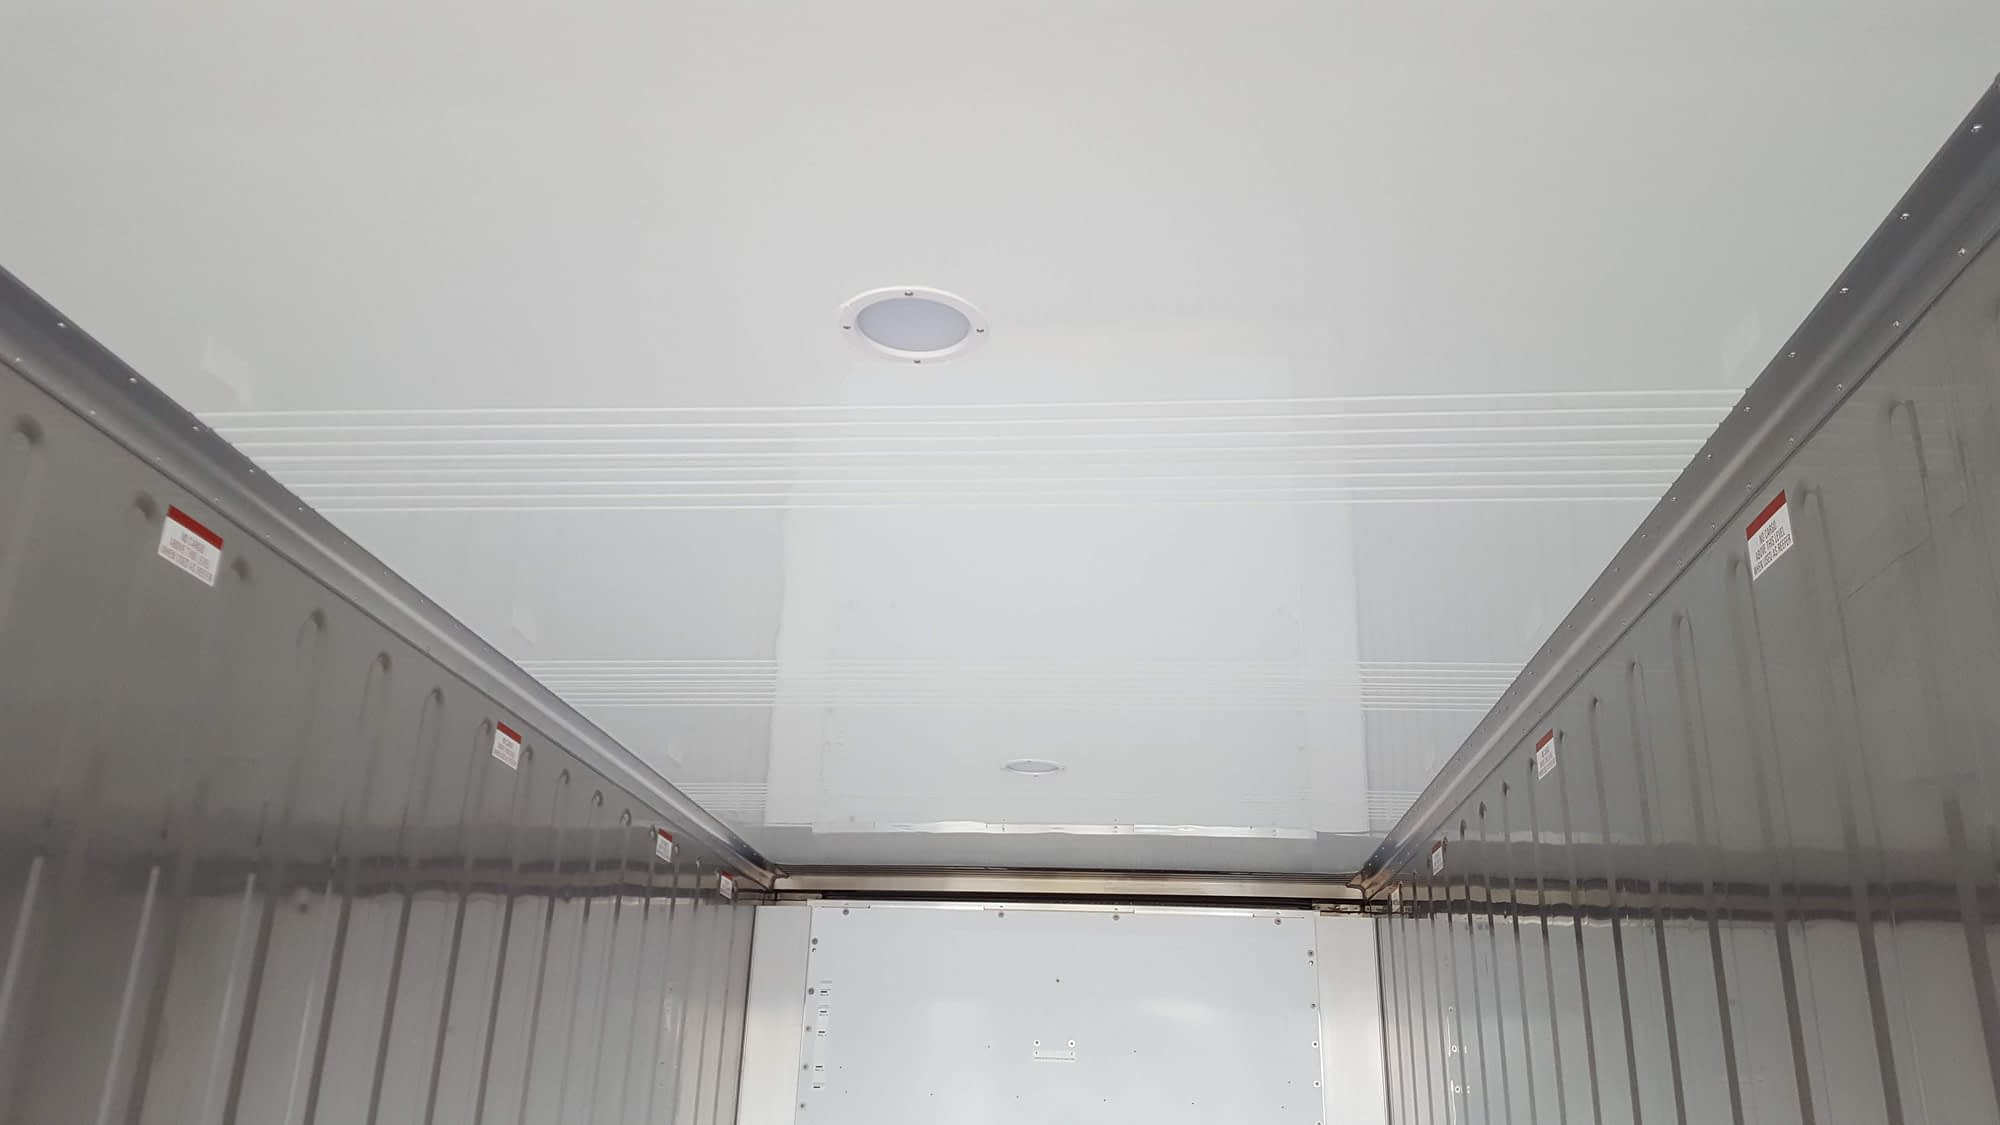 New TRS refrigeration containers have interior lights